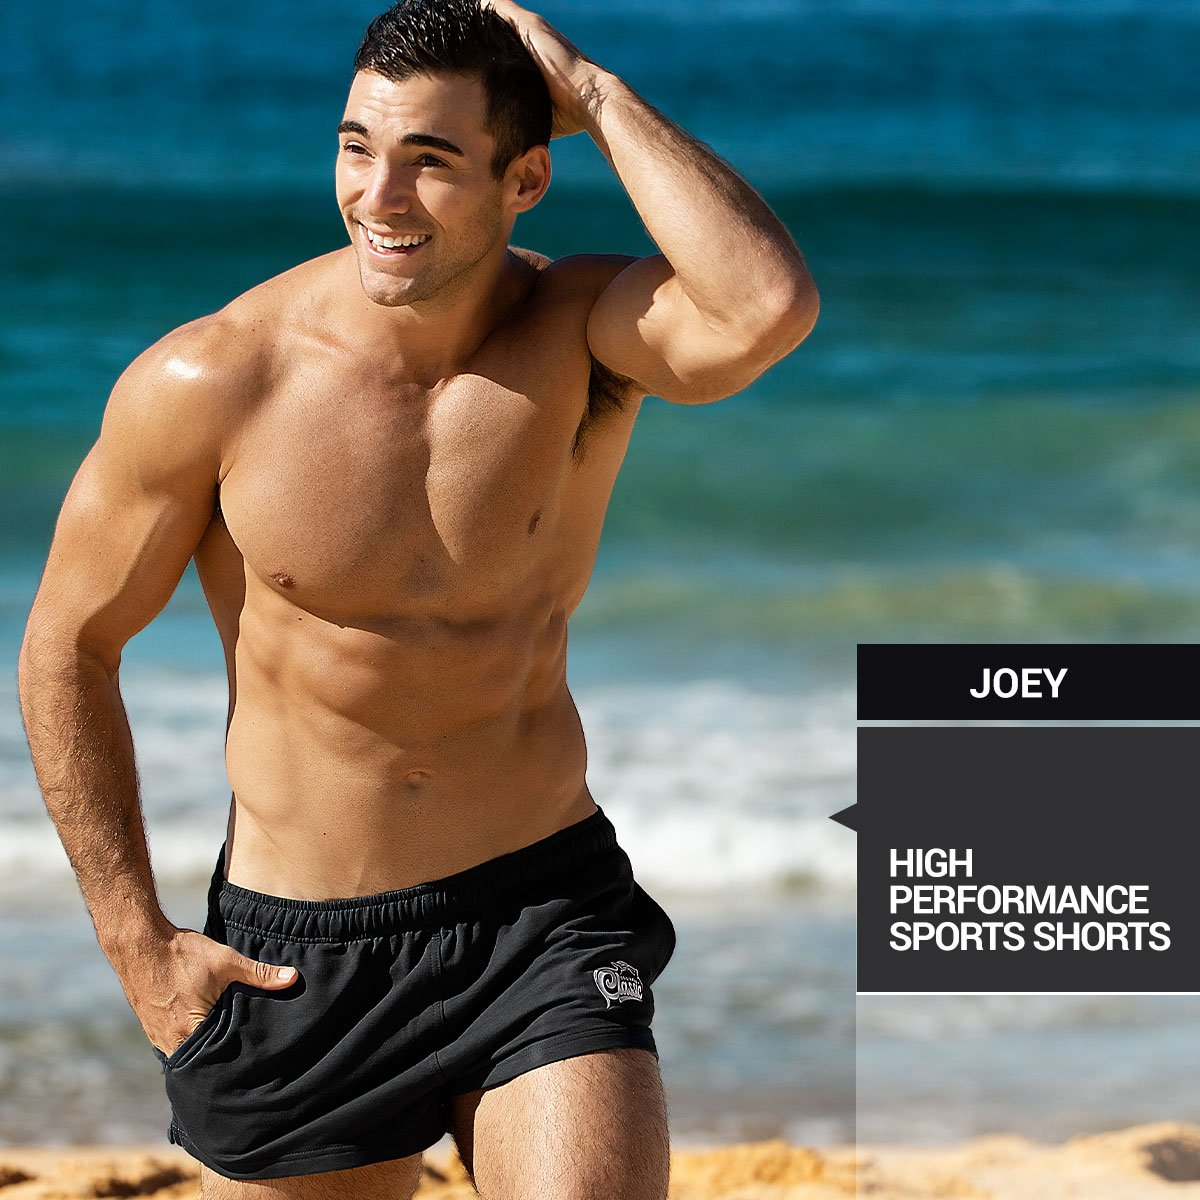 Joey Black Homepage Image